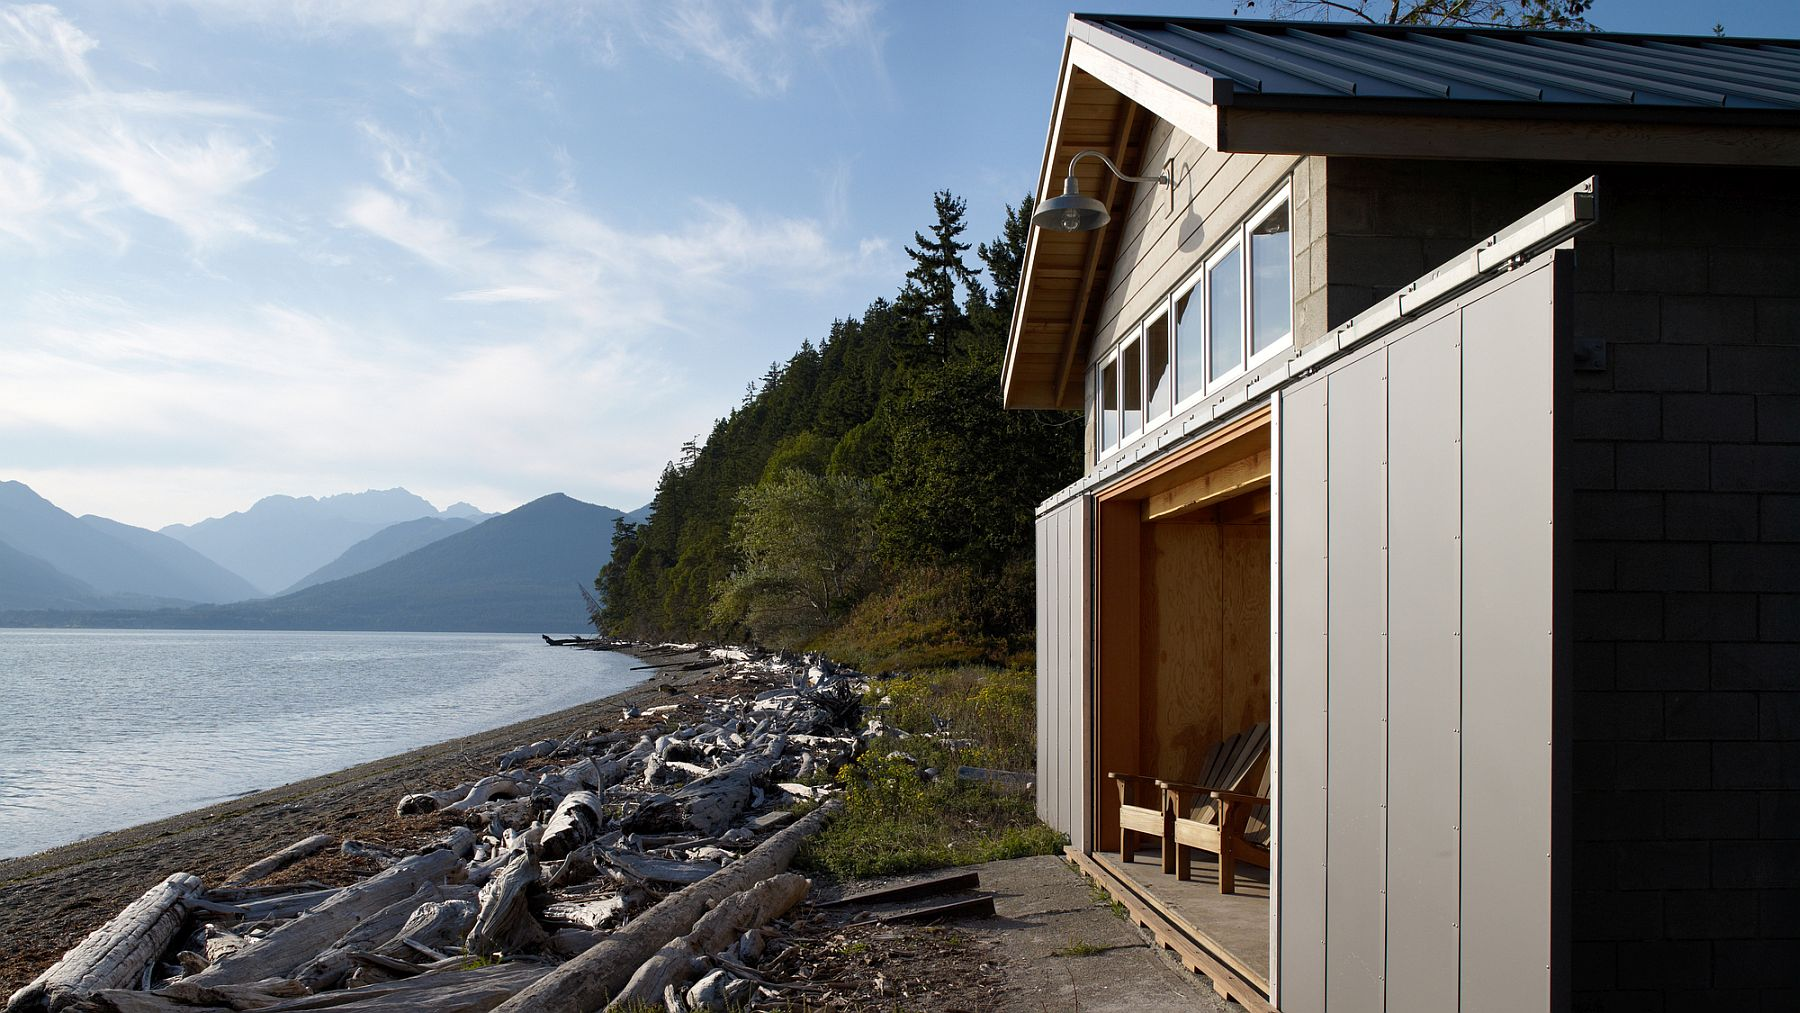 Exquisite views and amazing landscape at the Hood Canal Boat House